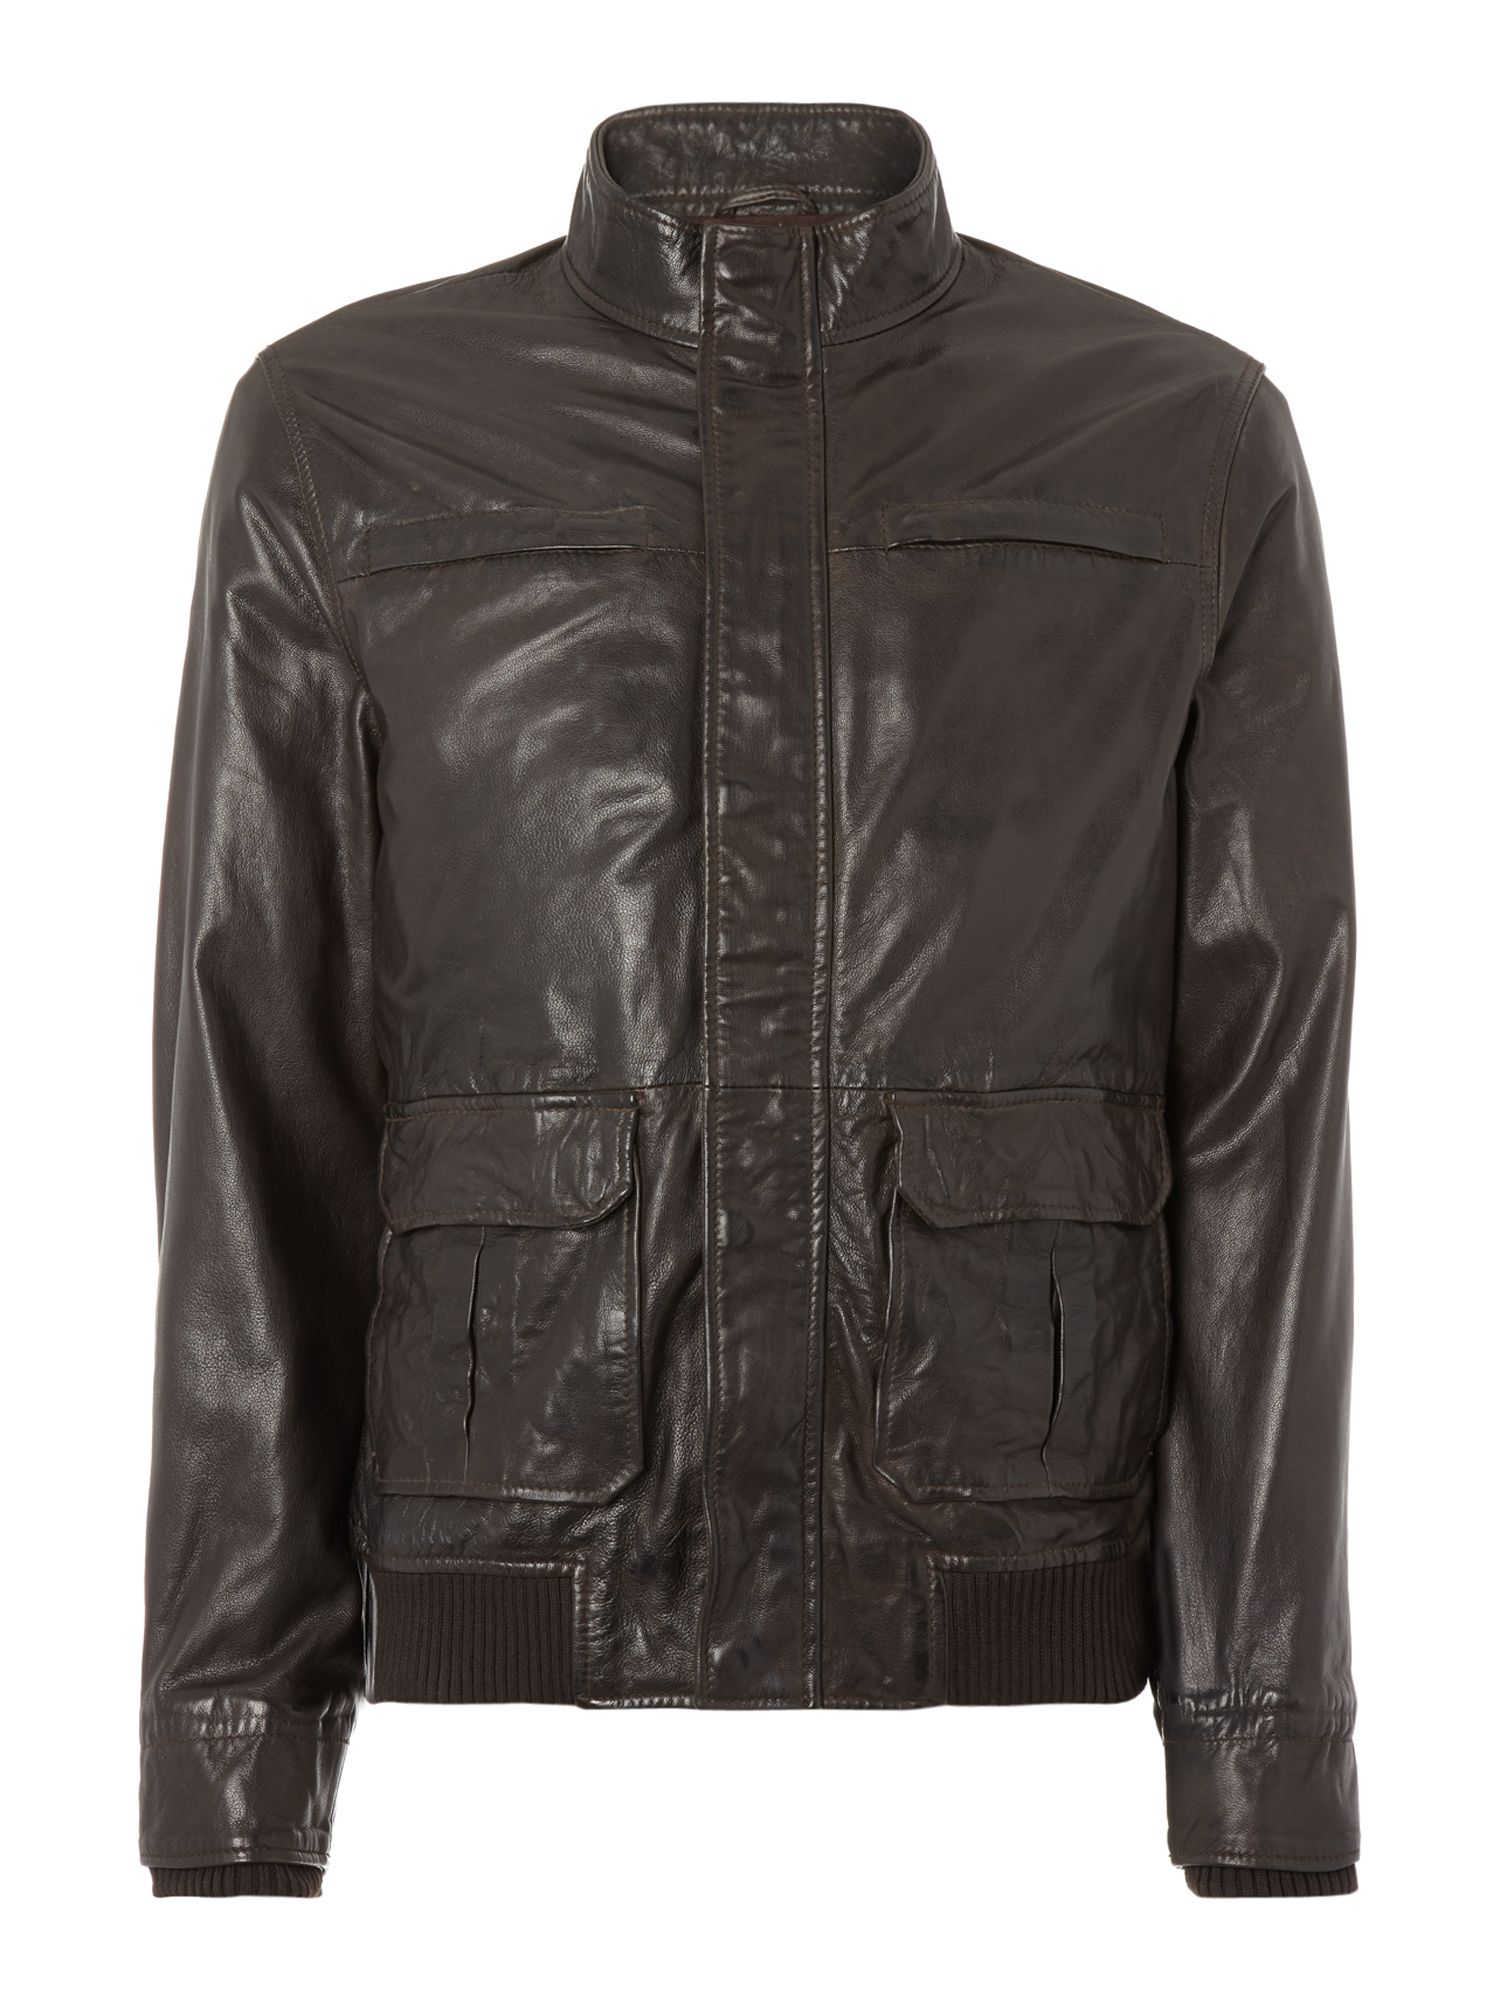 Rook limited edition leather jacket